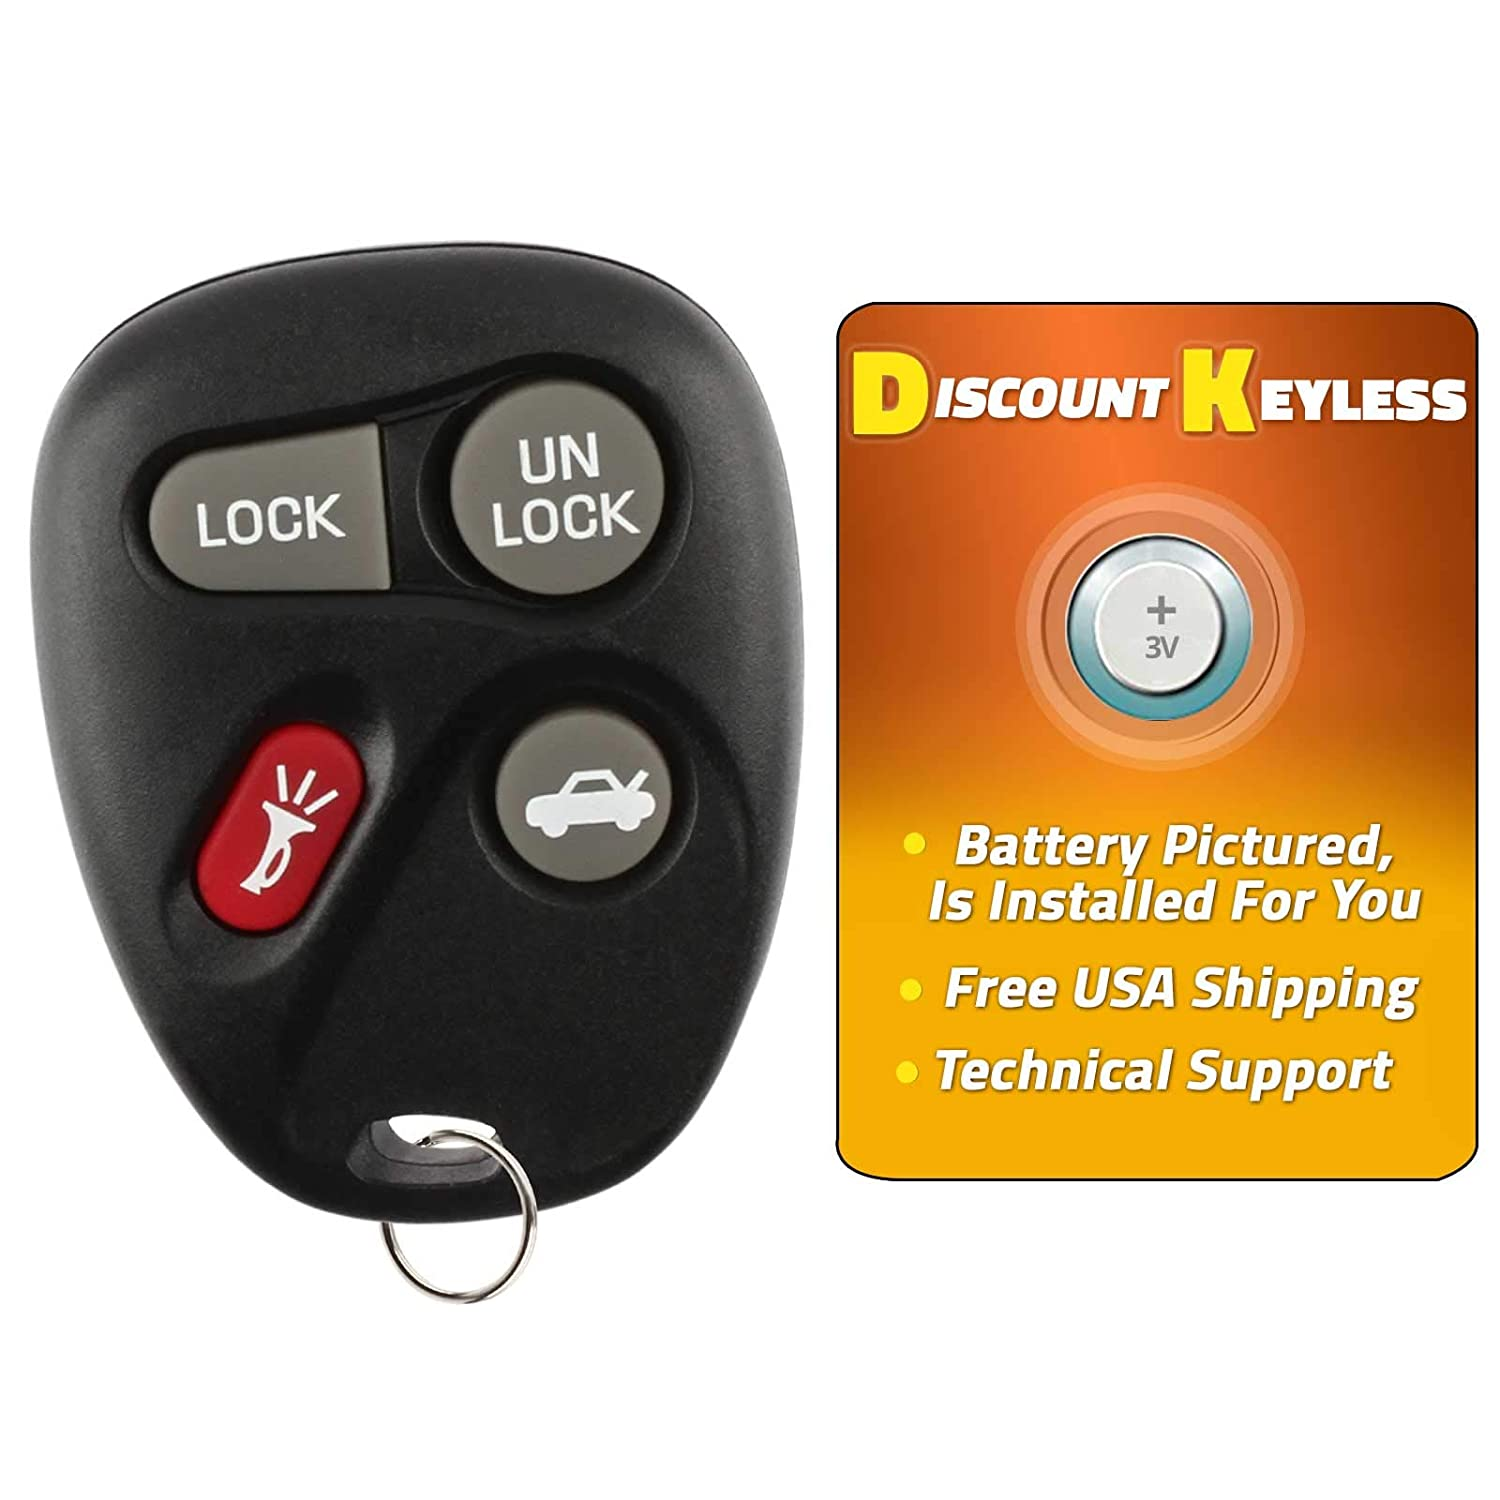 24401698 22692190 Discount Keyless Replacement Key Fob Car Remote Compatible with LHJ009